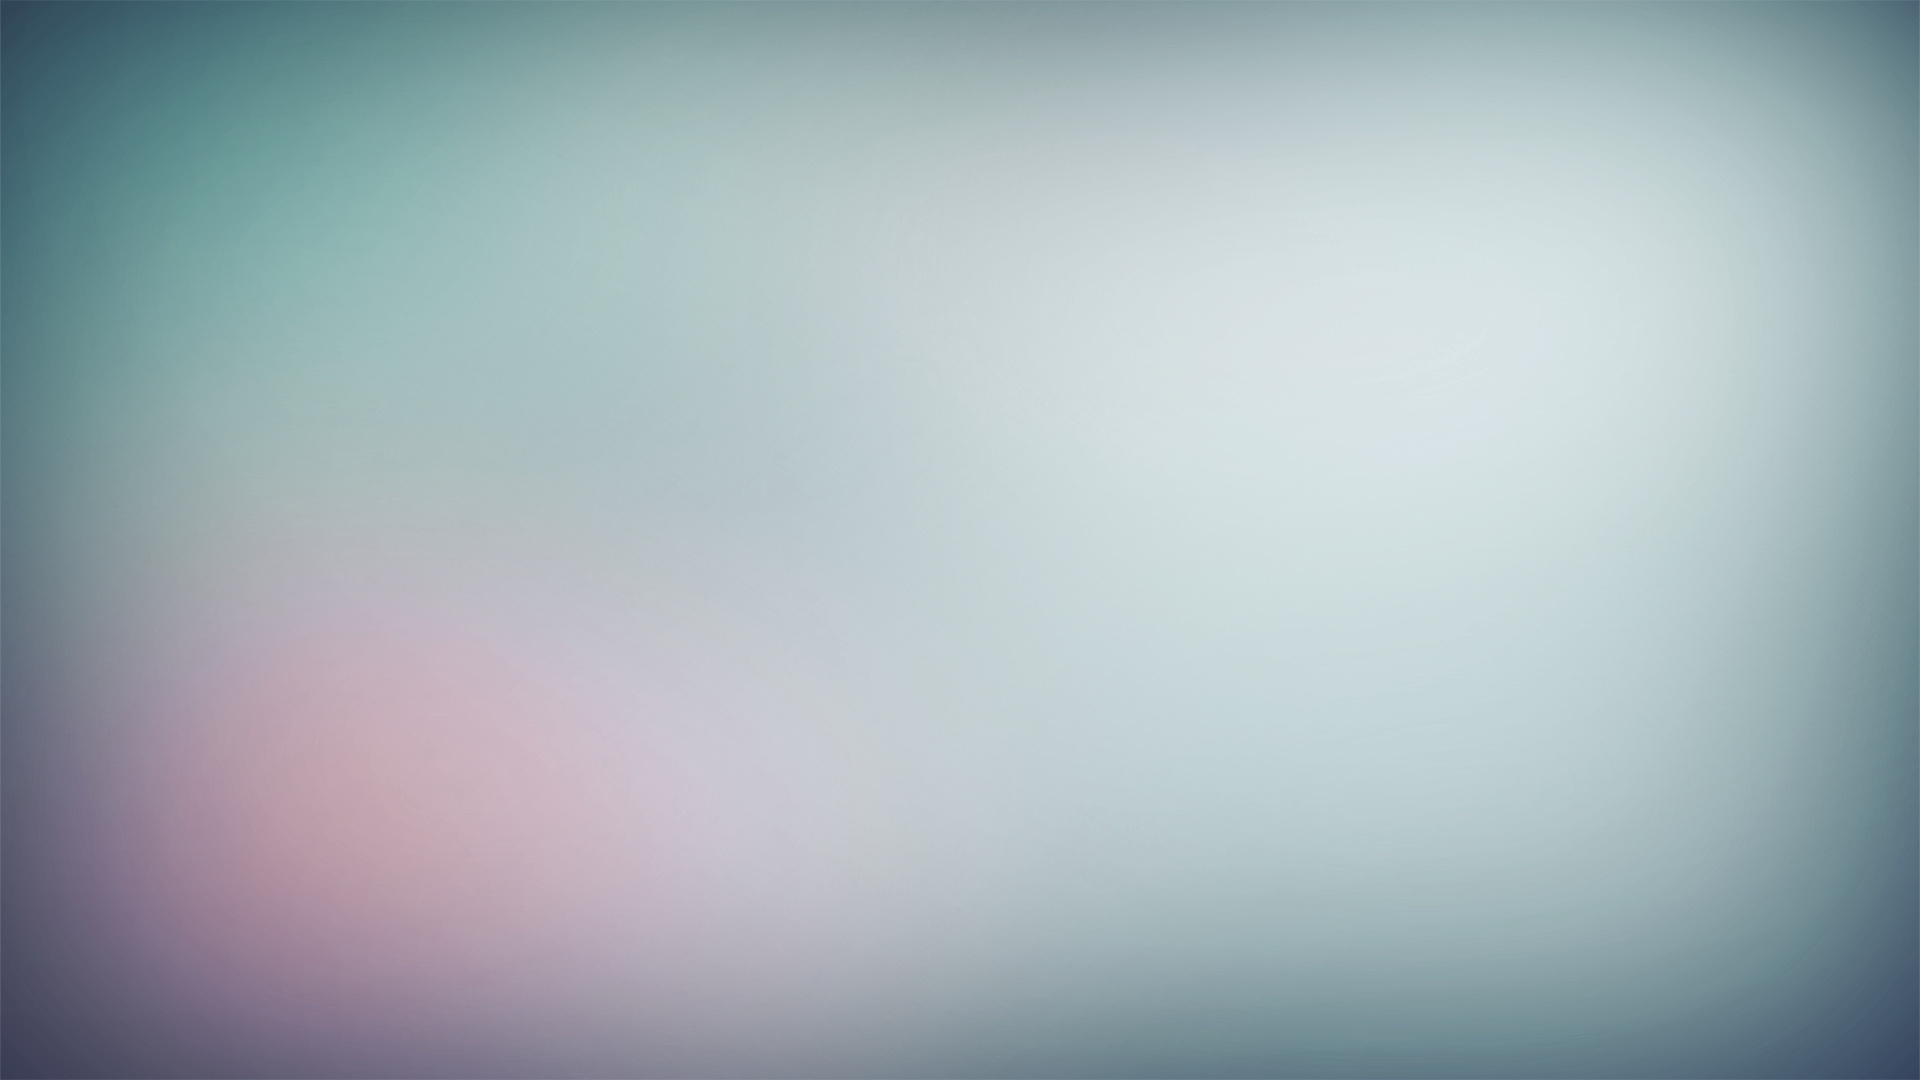 Light Gradient Wallpaper